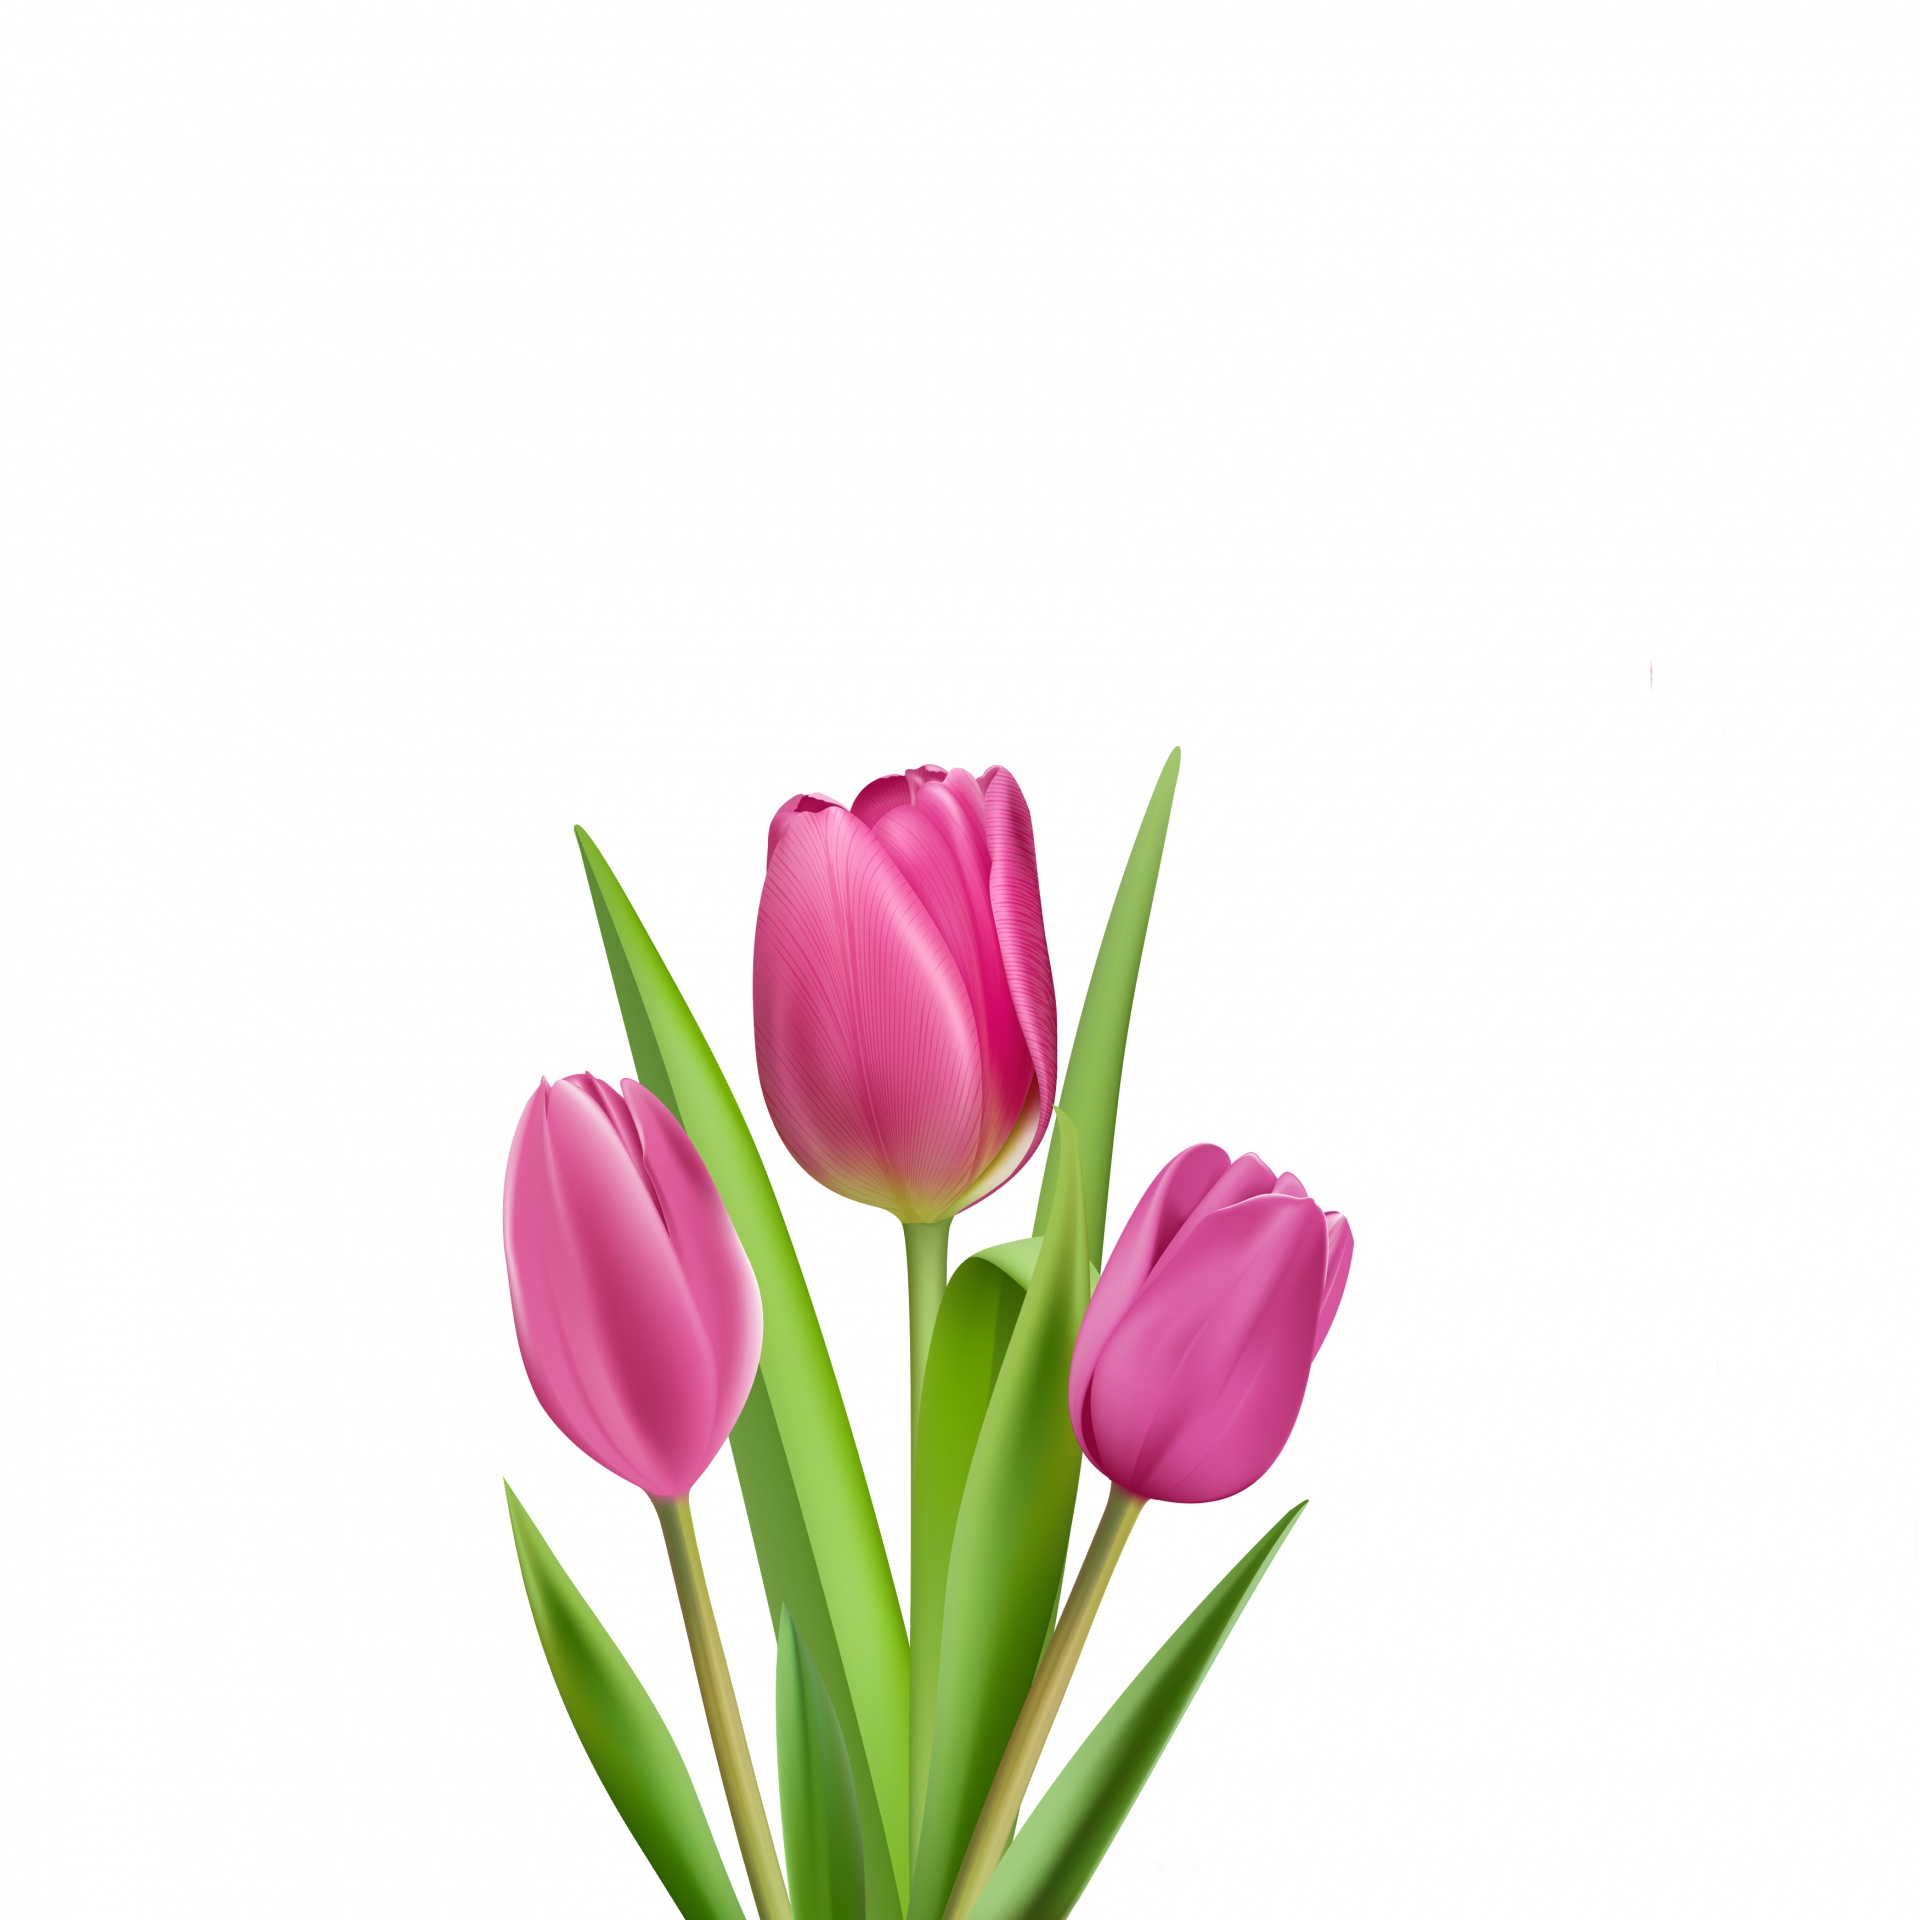 Illustration free stock photo. Tulips clipart